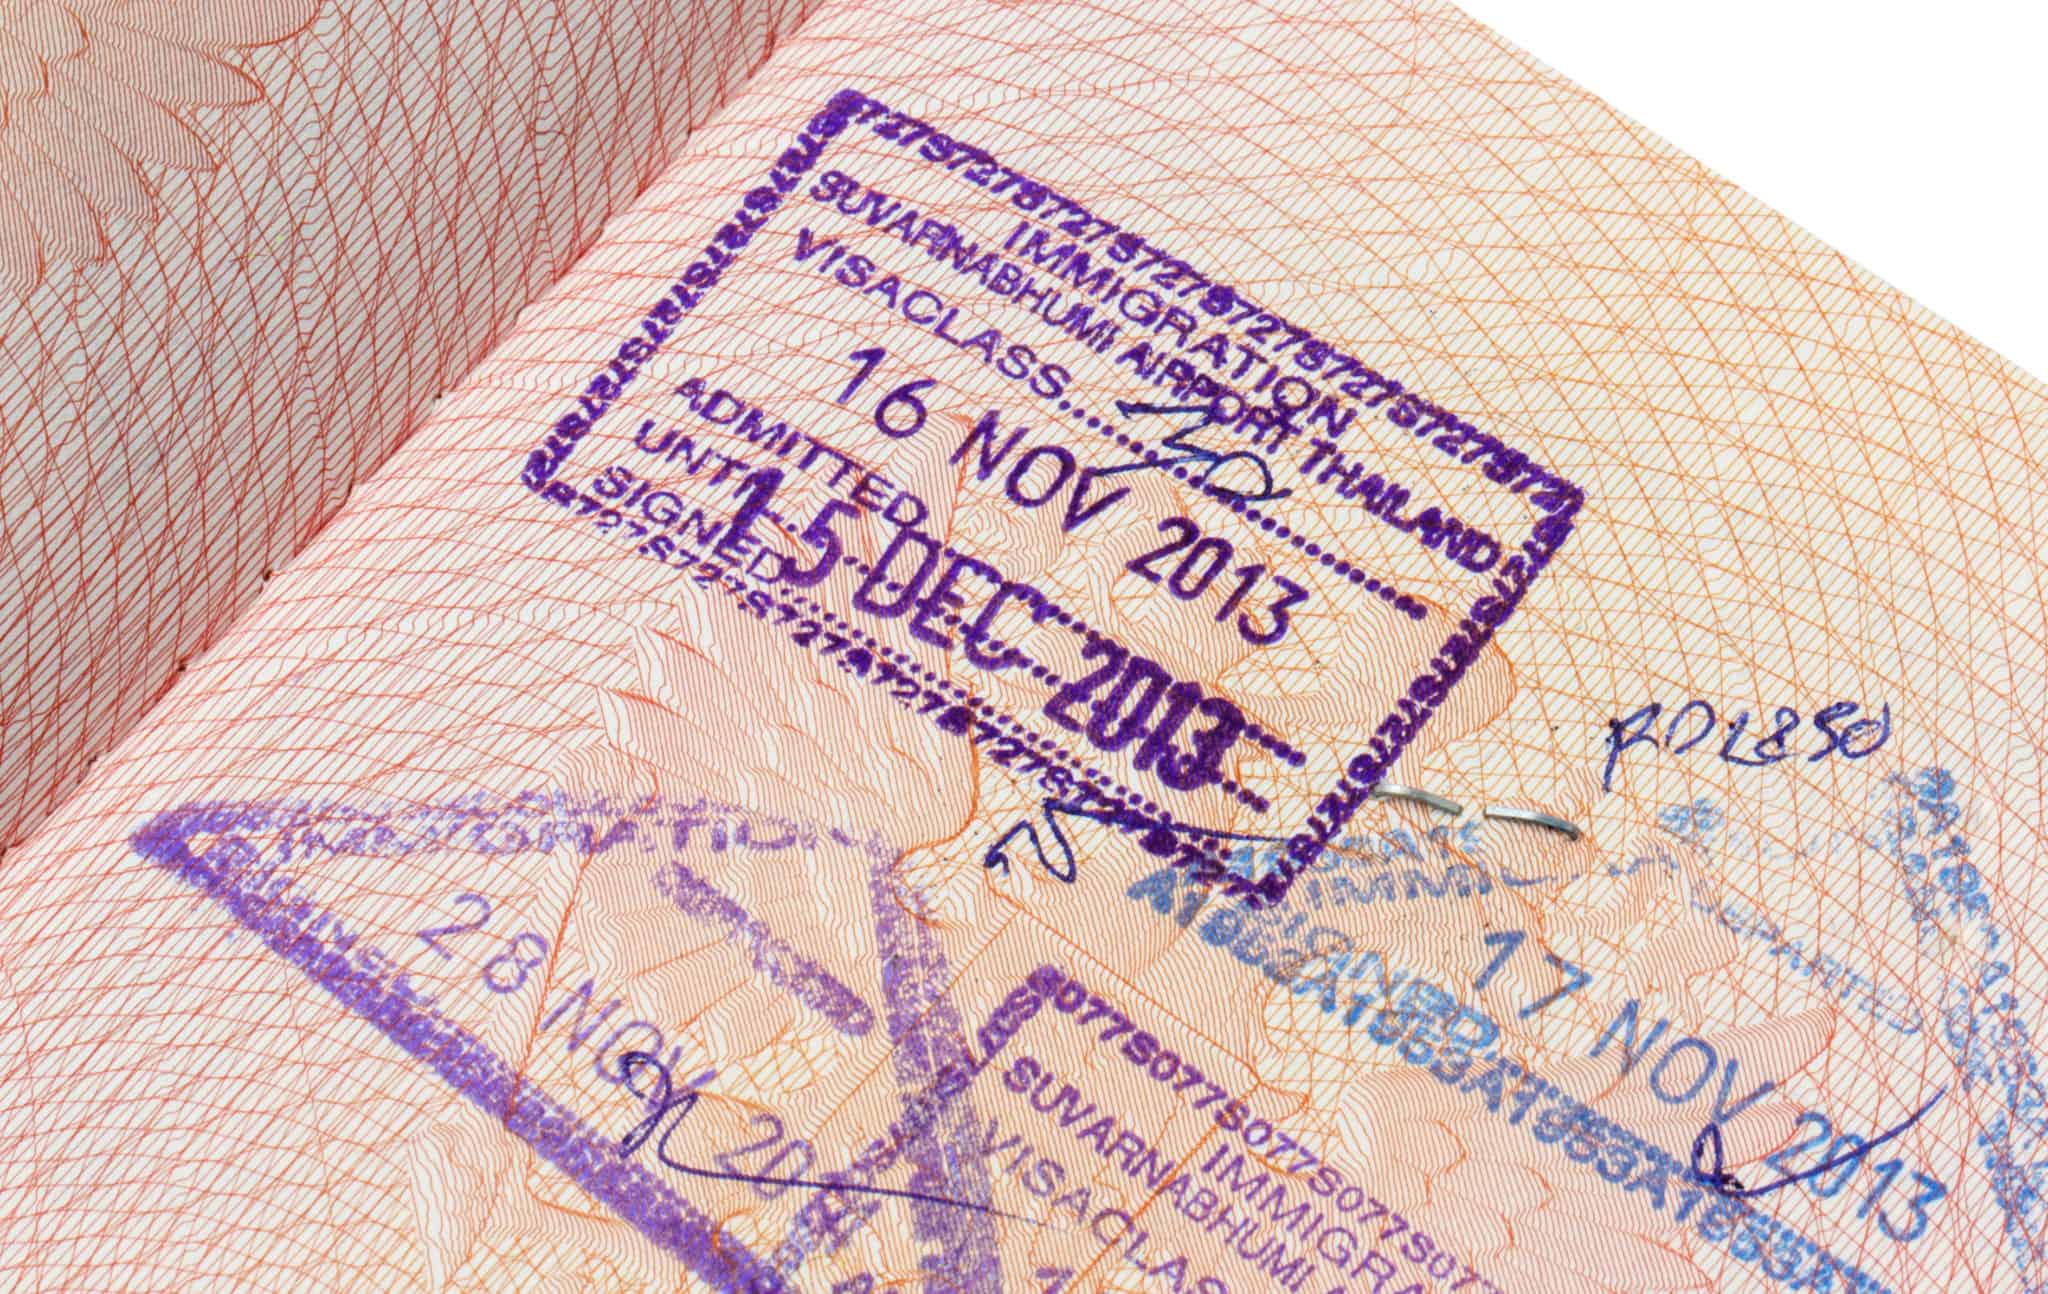 A 30-day exemption Thai immigration visa stamp